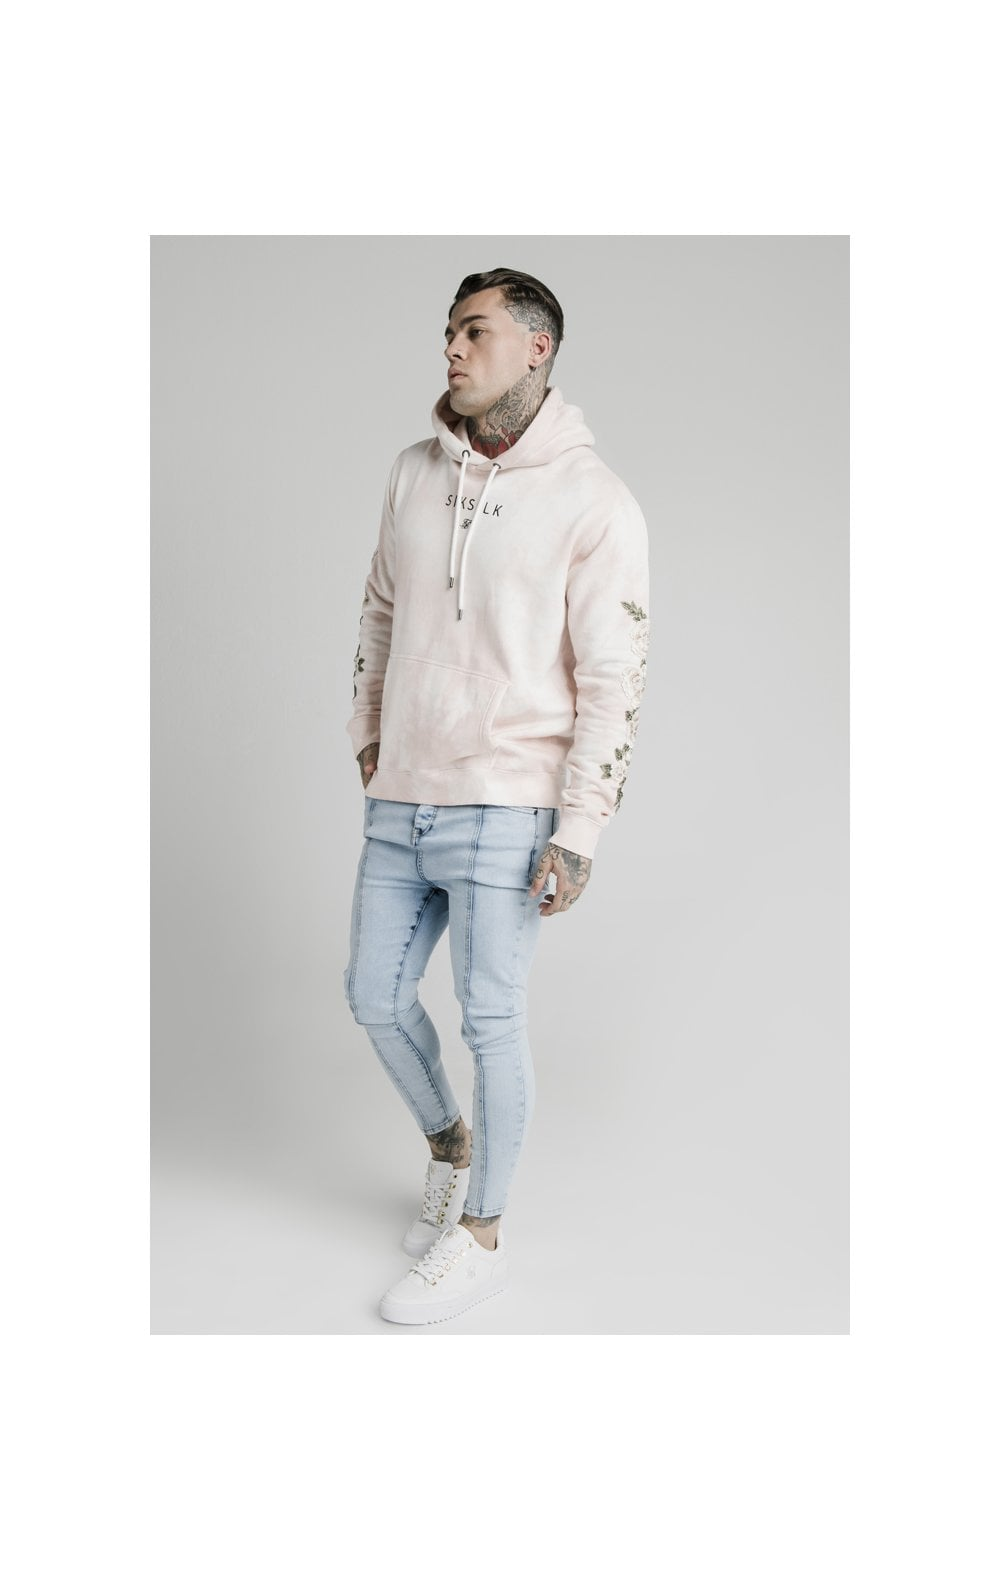 SikSilk Drop Crotch Pleated Applique Denims - White (3)